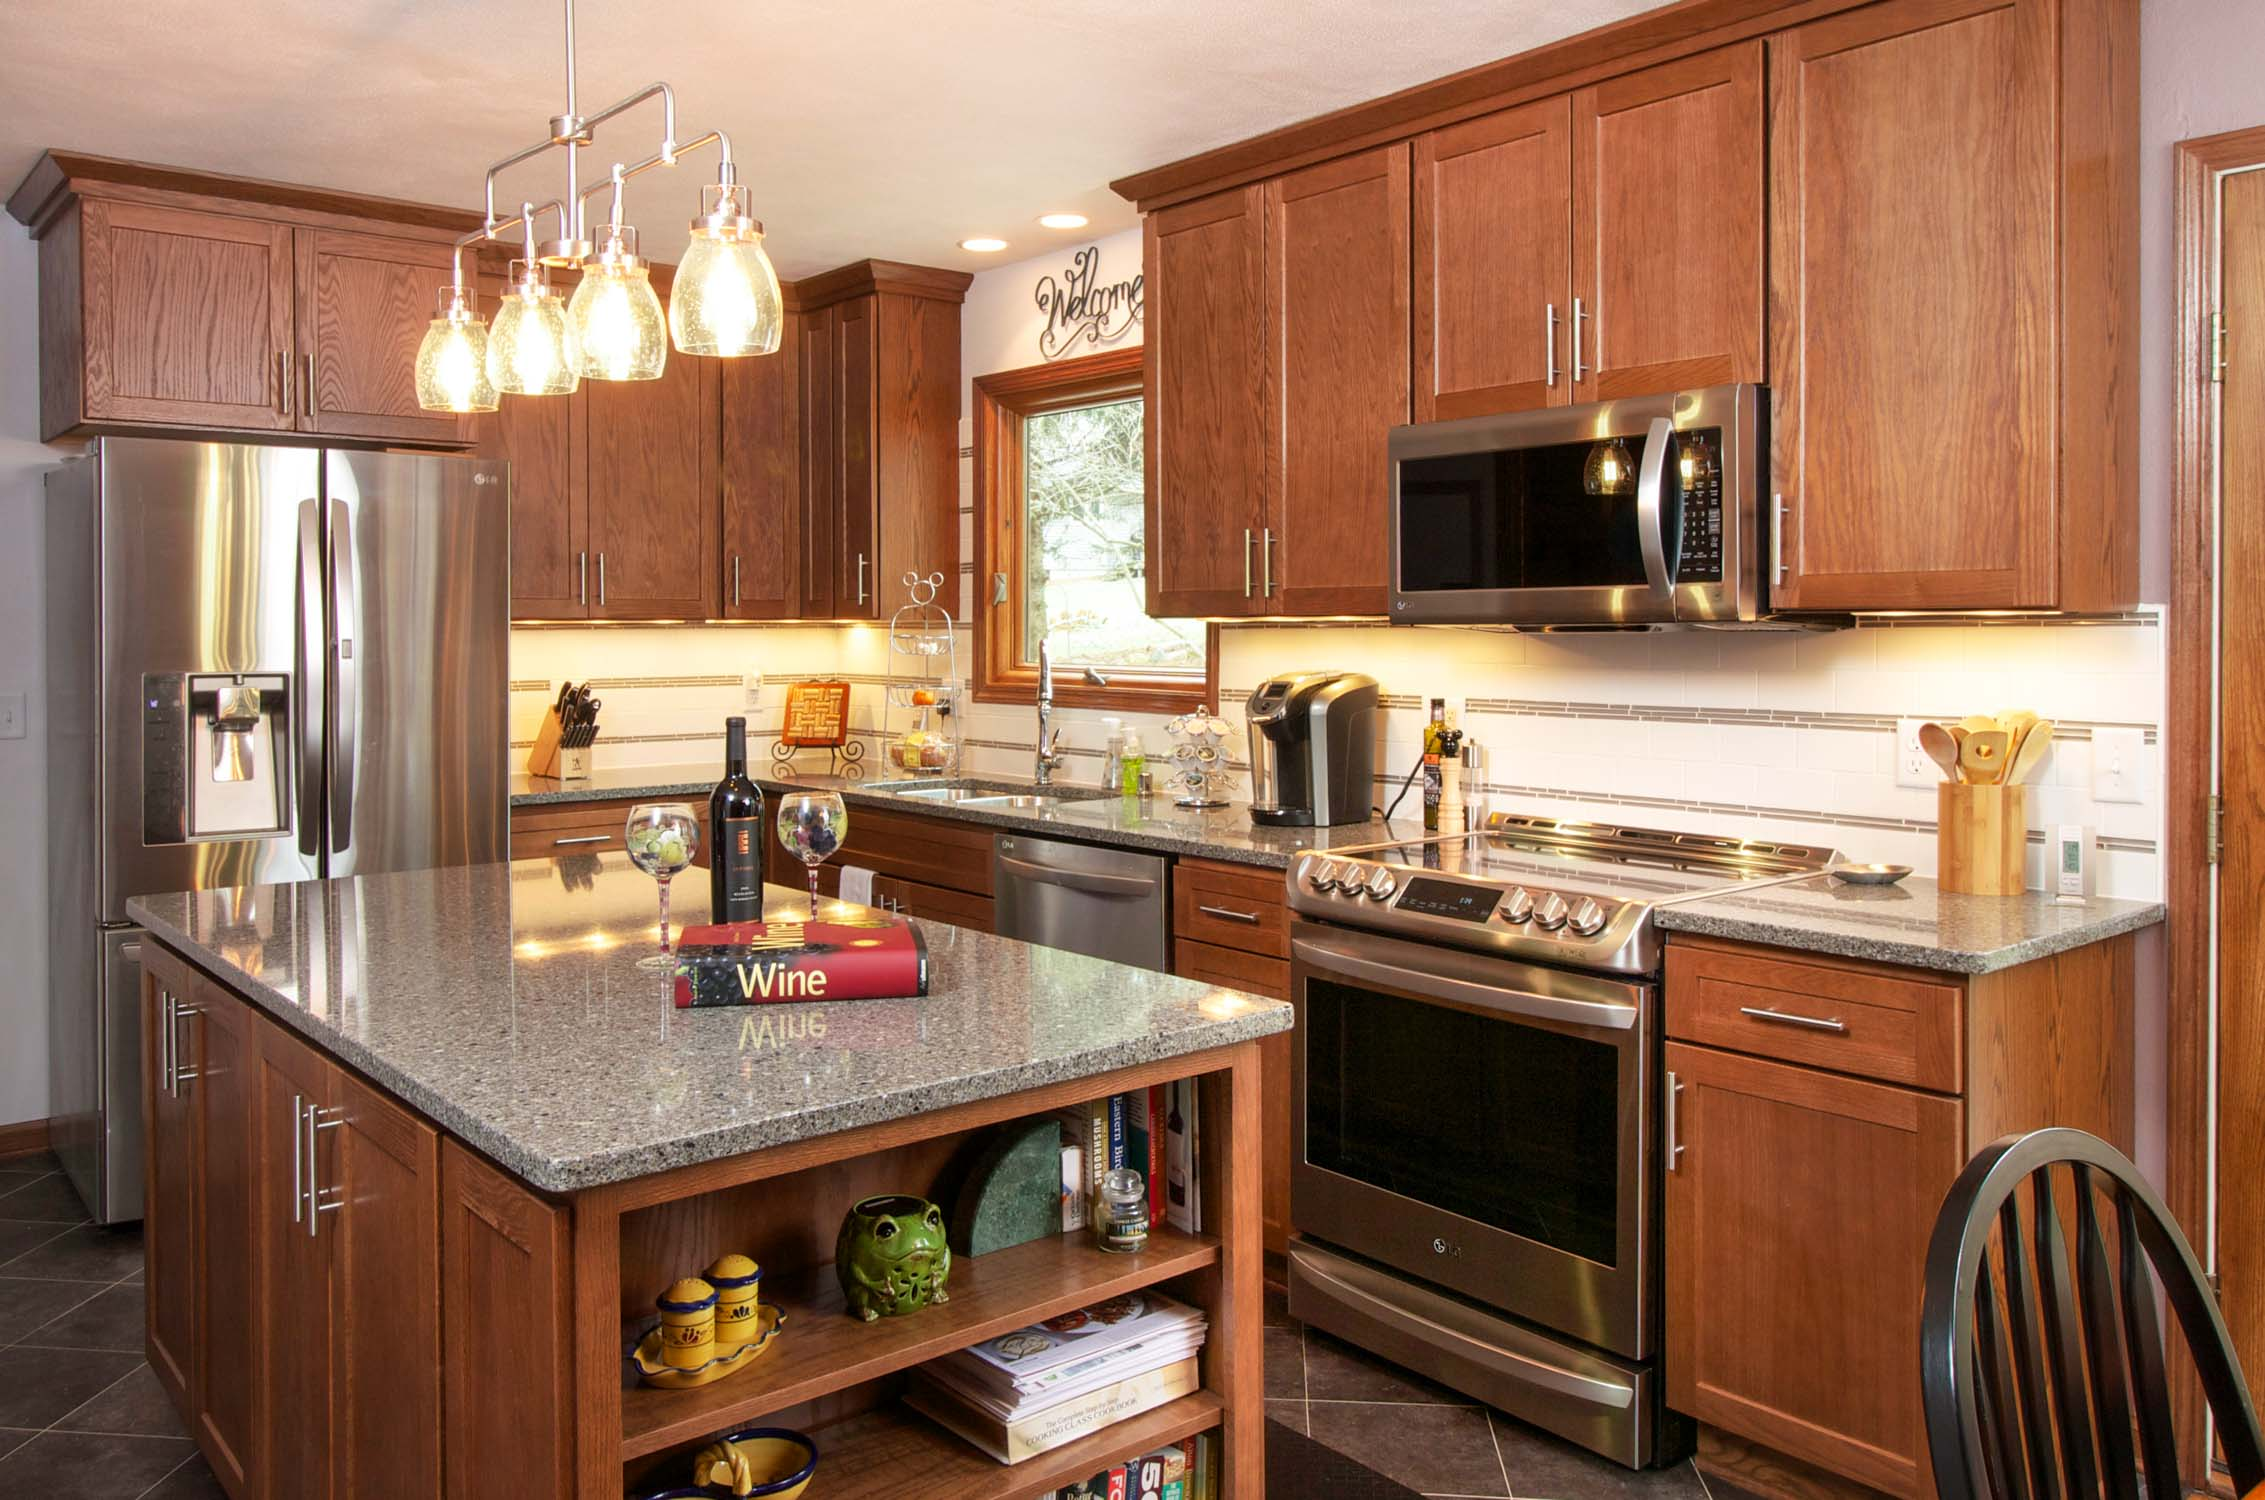 Task Lighting in Small Kitchens - In a smaller kitchen space, task lighting plays a prominent role. With only the island fixture for ambient light, the recessed cans over the sink and undercabinet lights provide the rest of the lighting needed for this kitchen.